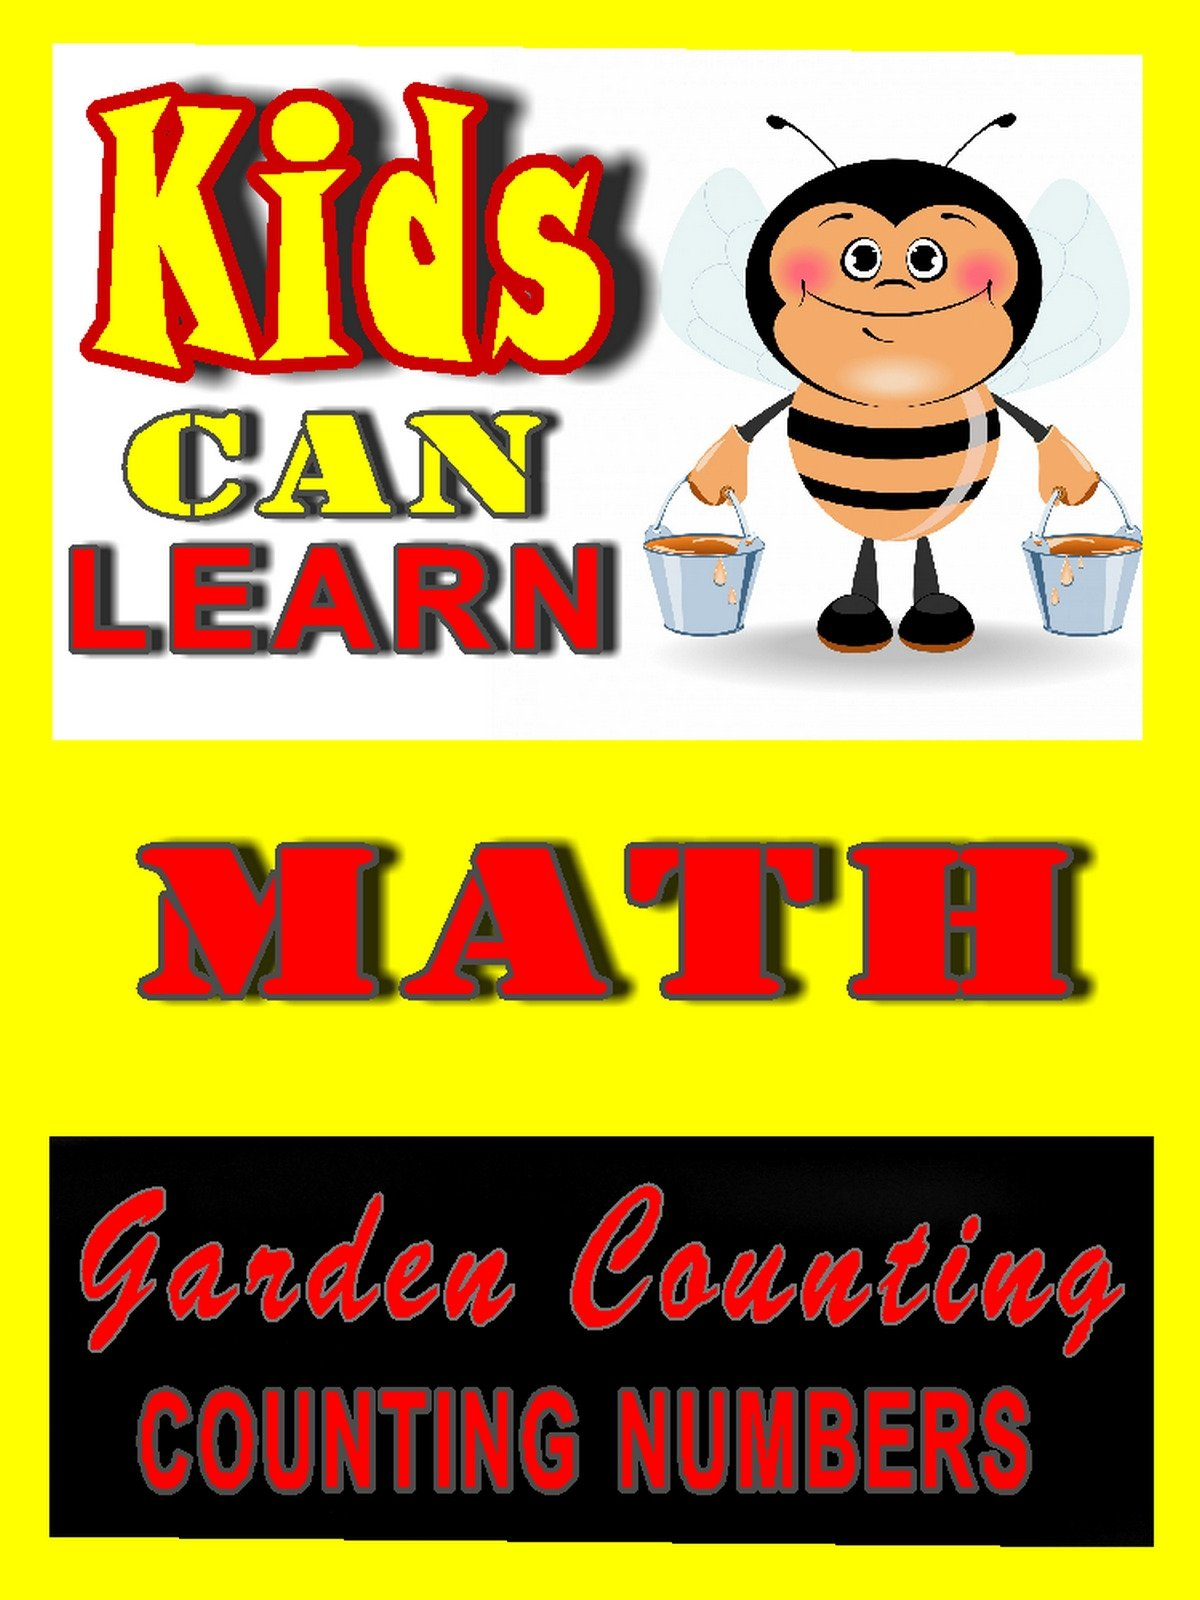 Kids can Learn Math, Garden Counting (Number Counting)